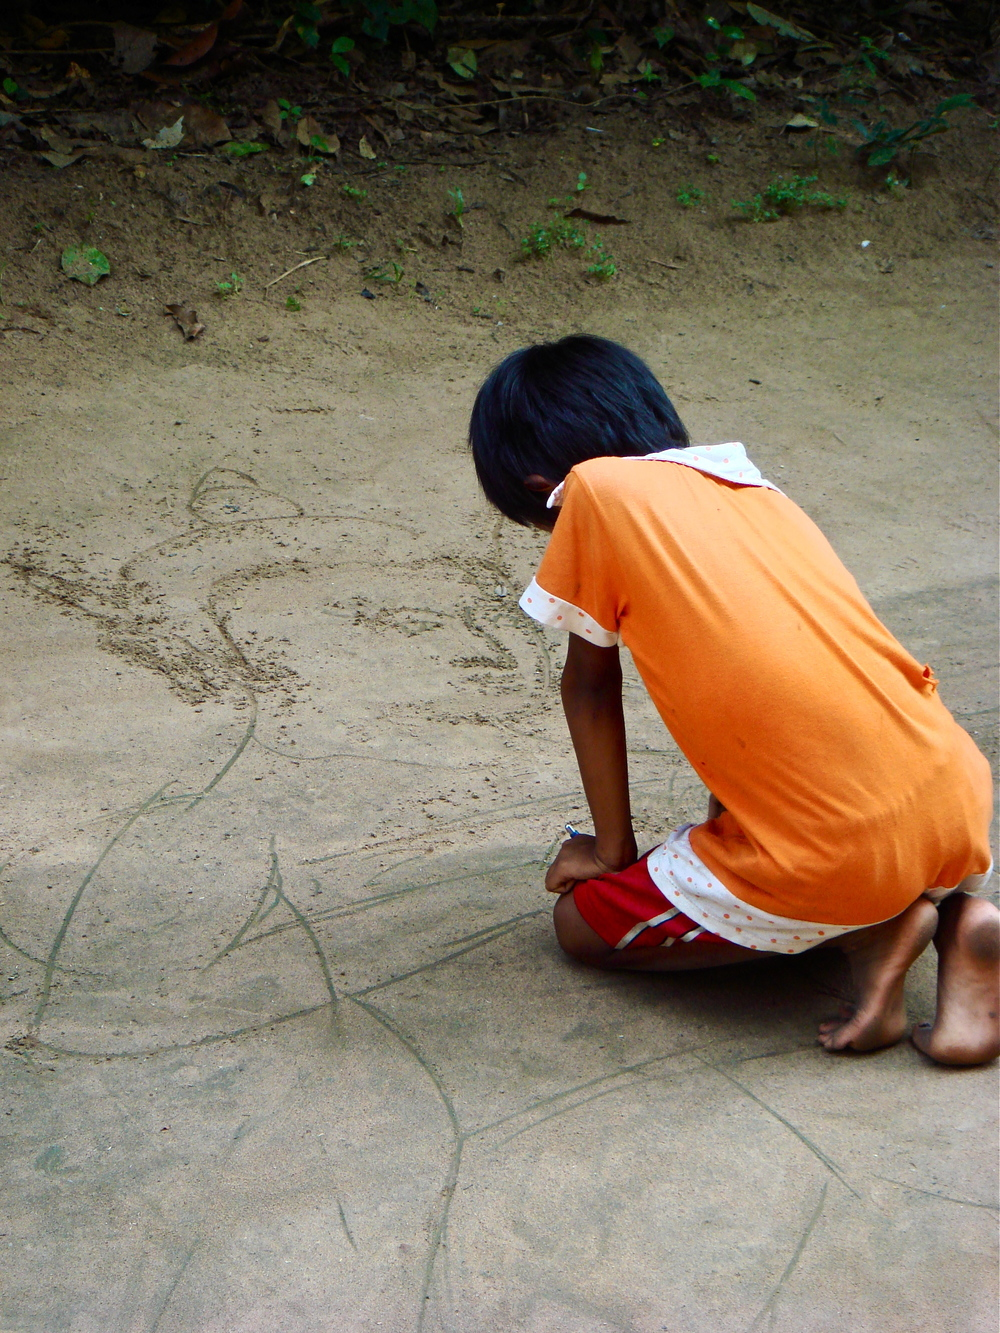 The Little Artist               Angkor, Siem Reap, Cambodia